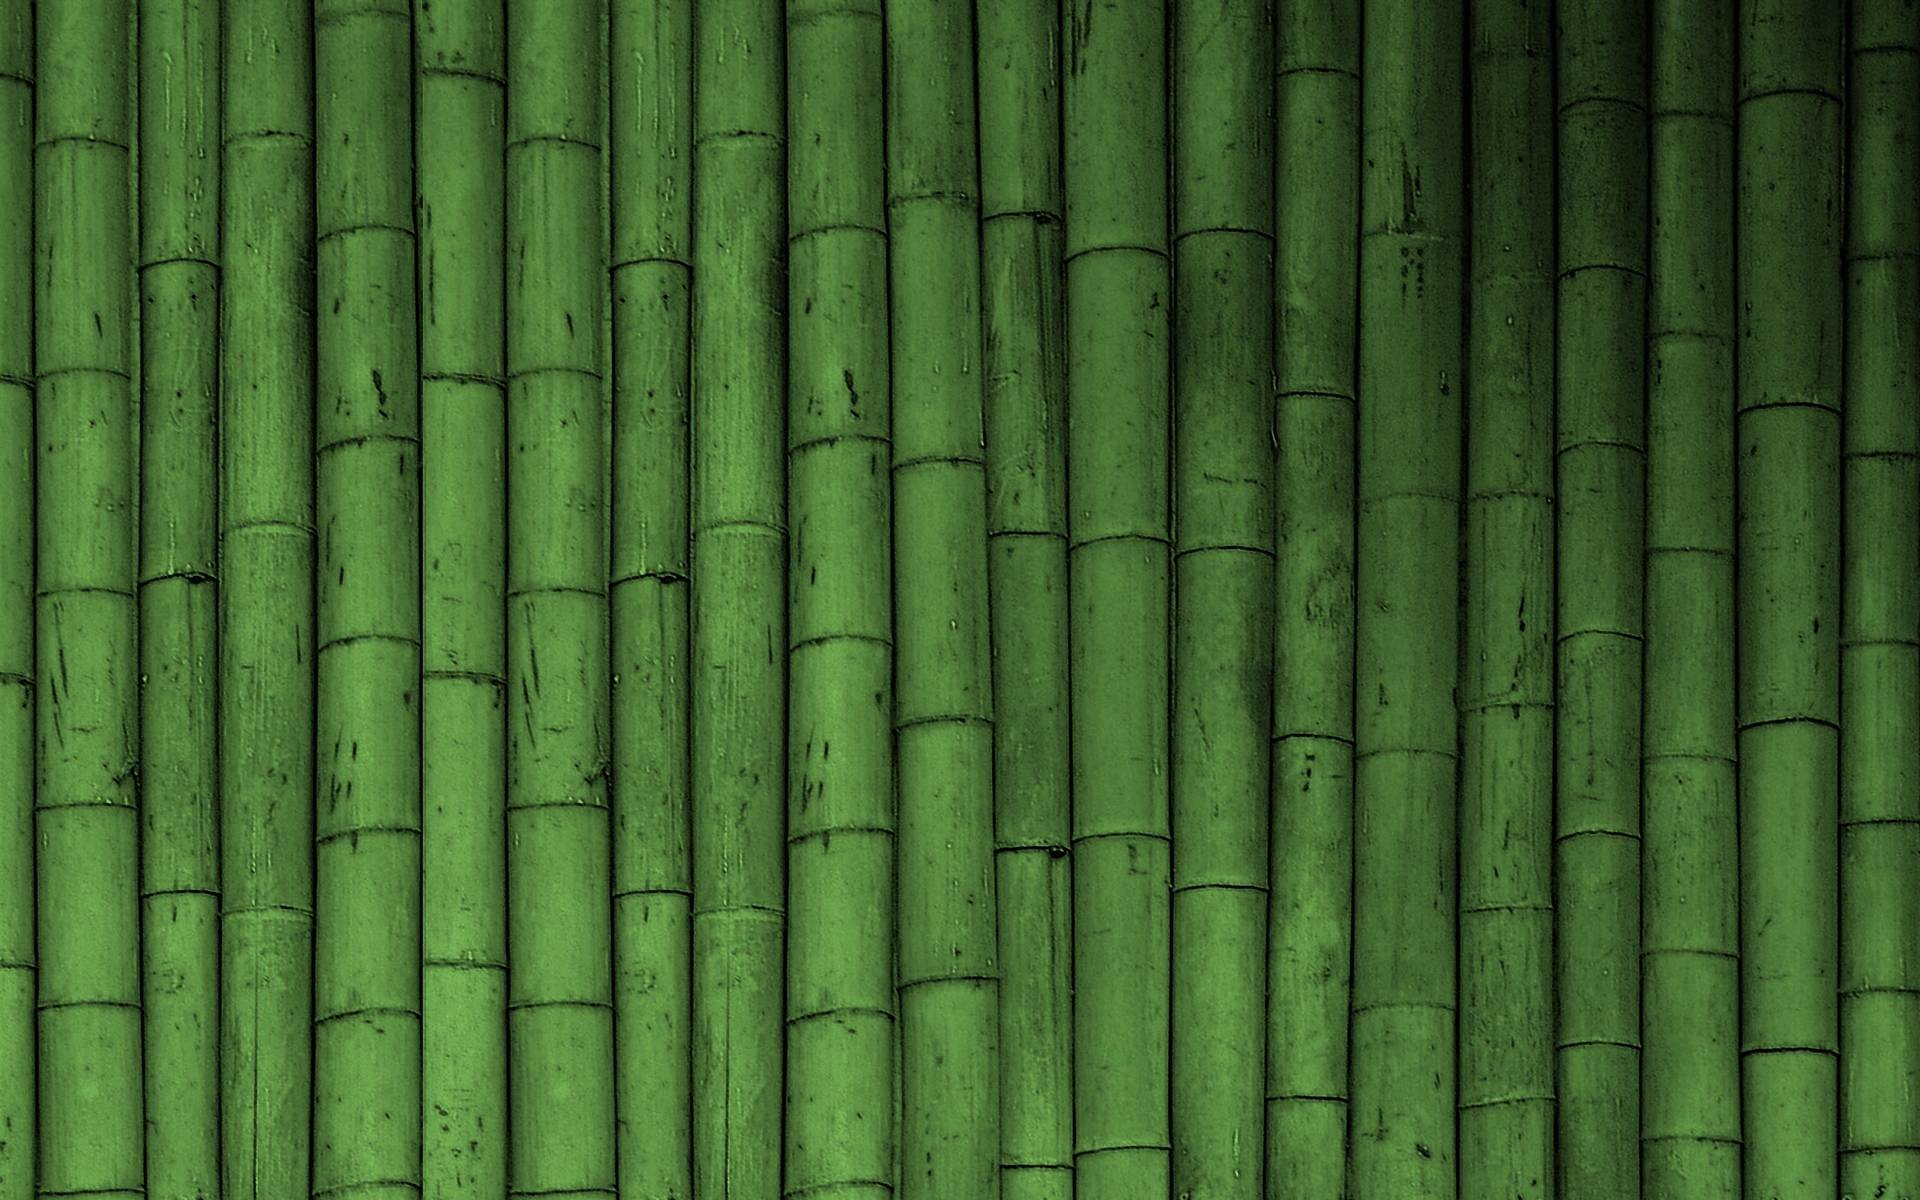 1920x1200 HD Bamboo Wallpapers Download Free 1280×800 Bamboo Wallpaper (38 Wallpapers)  | Adorable